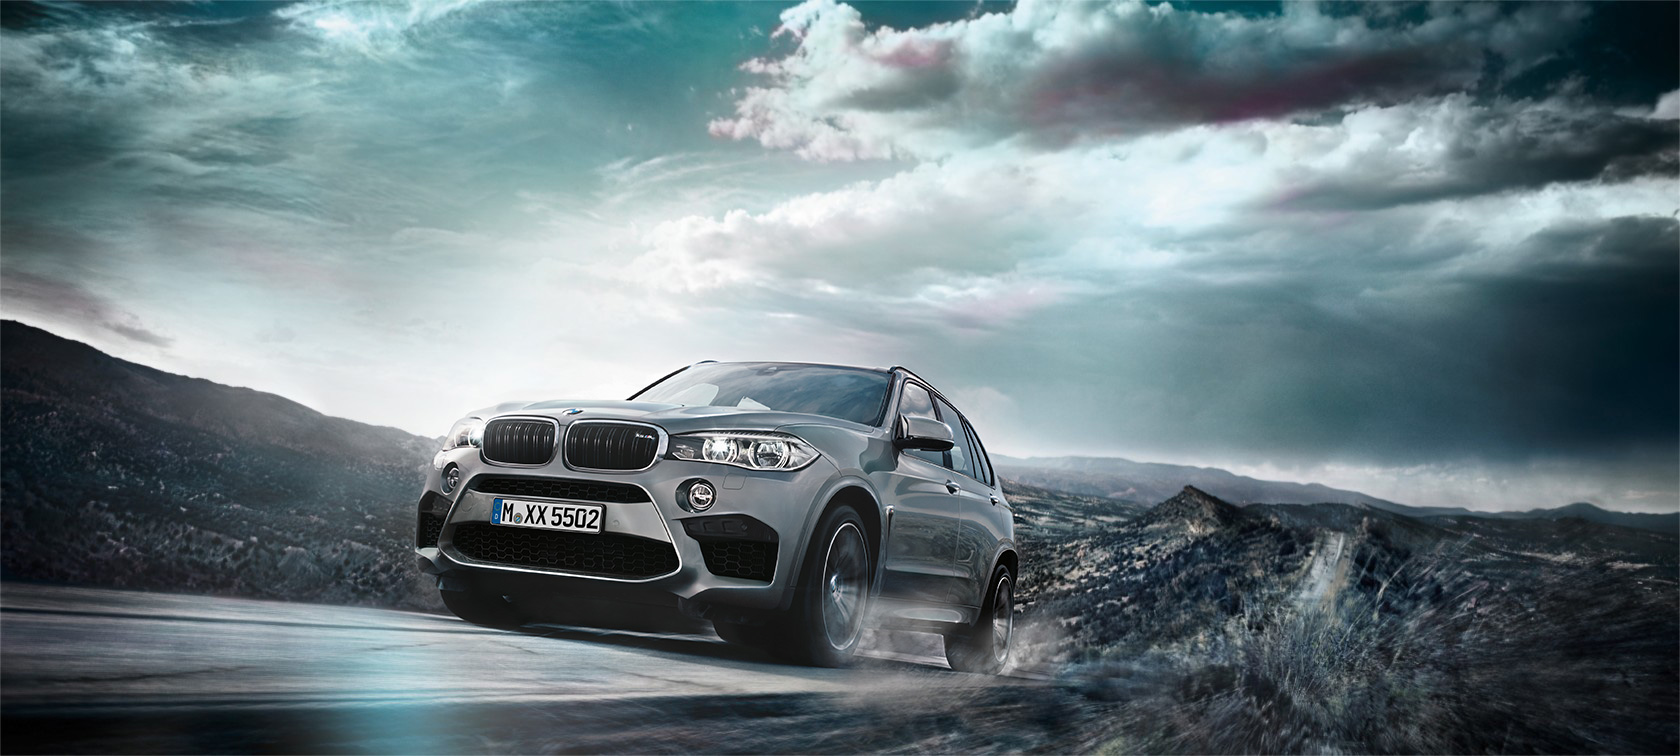 The captivating M design of the BMW X5 M